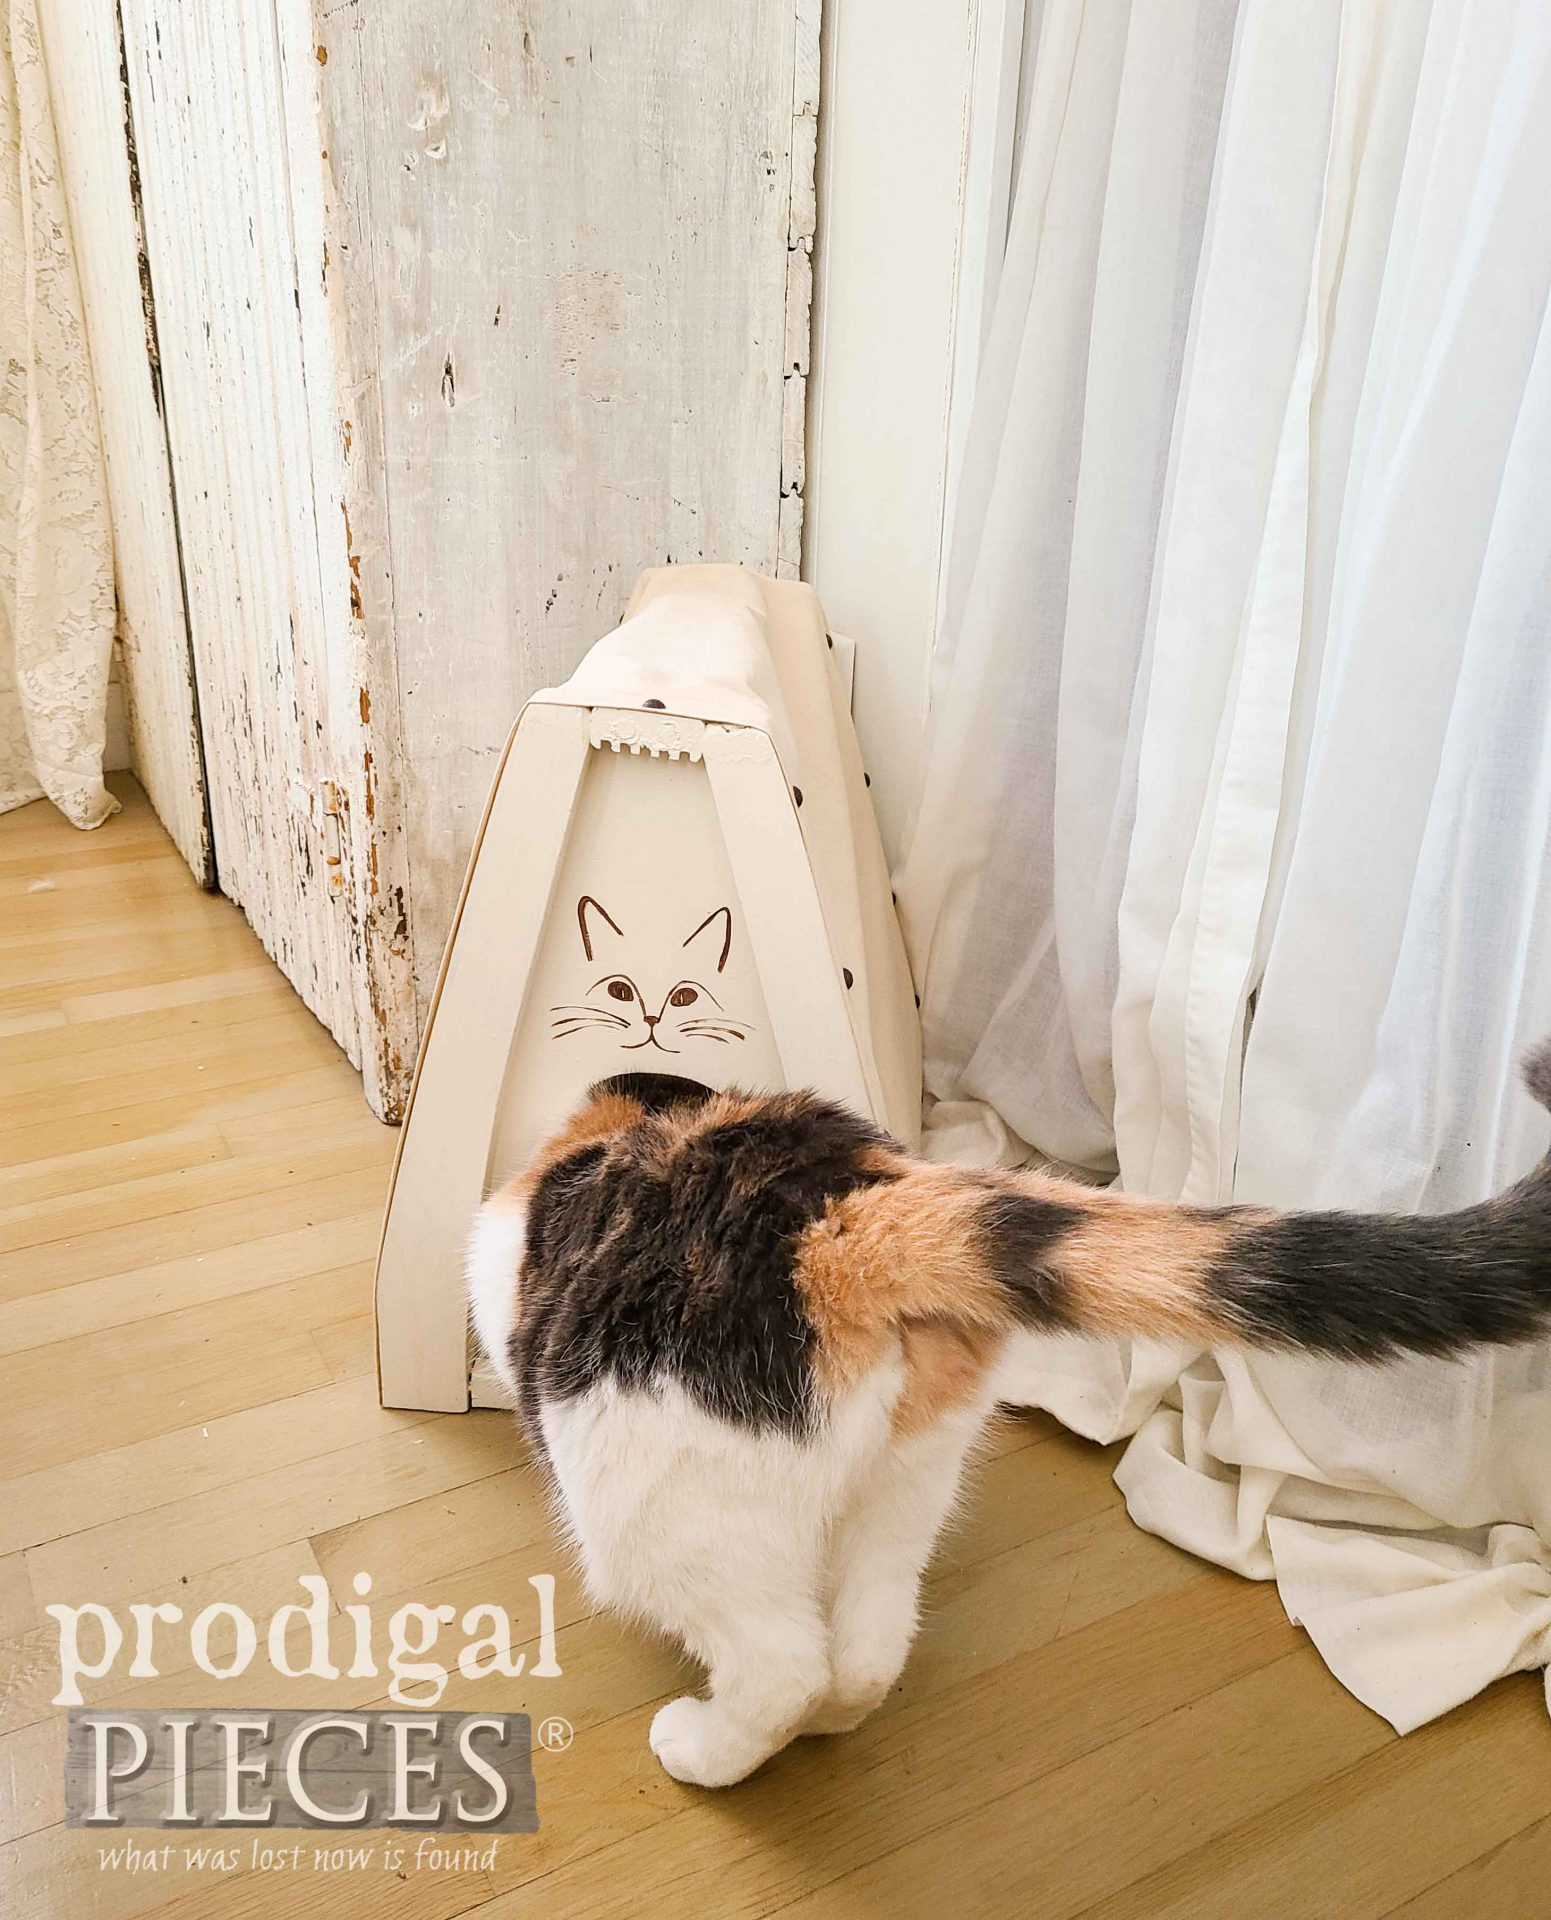 Calico Kitty Cat Cave by Larissa of Prodigal Pieces from Upcycle Chair Parts | prodigalpieces.com #prodigalpieces #diy #cats #home #homedecor